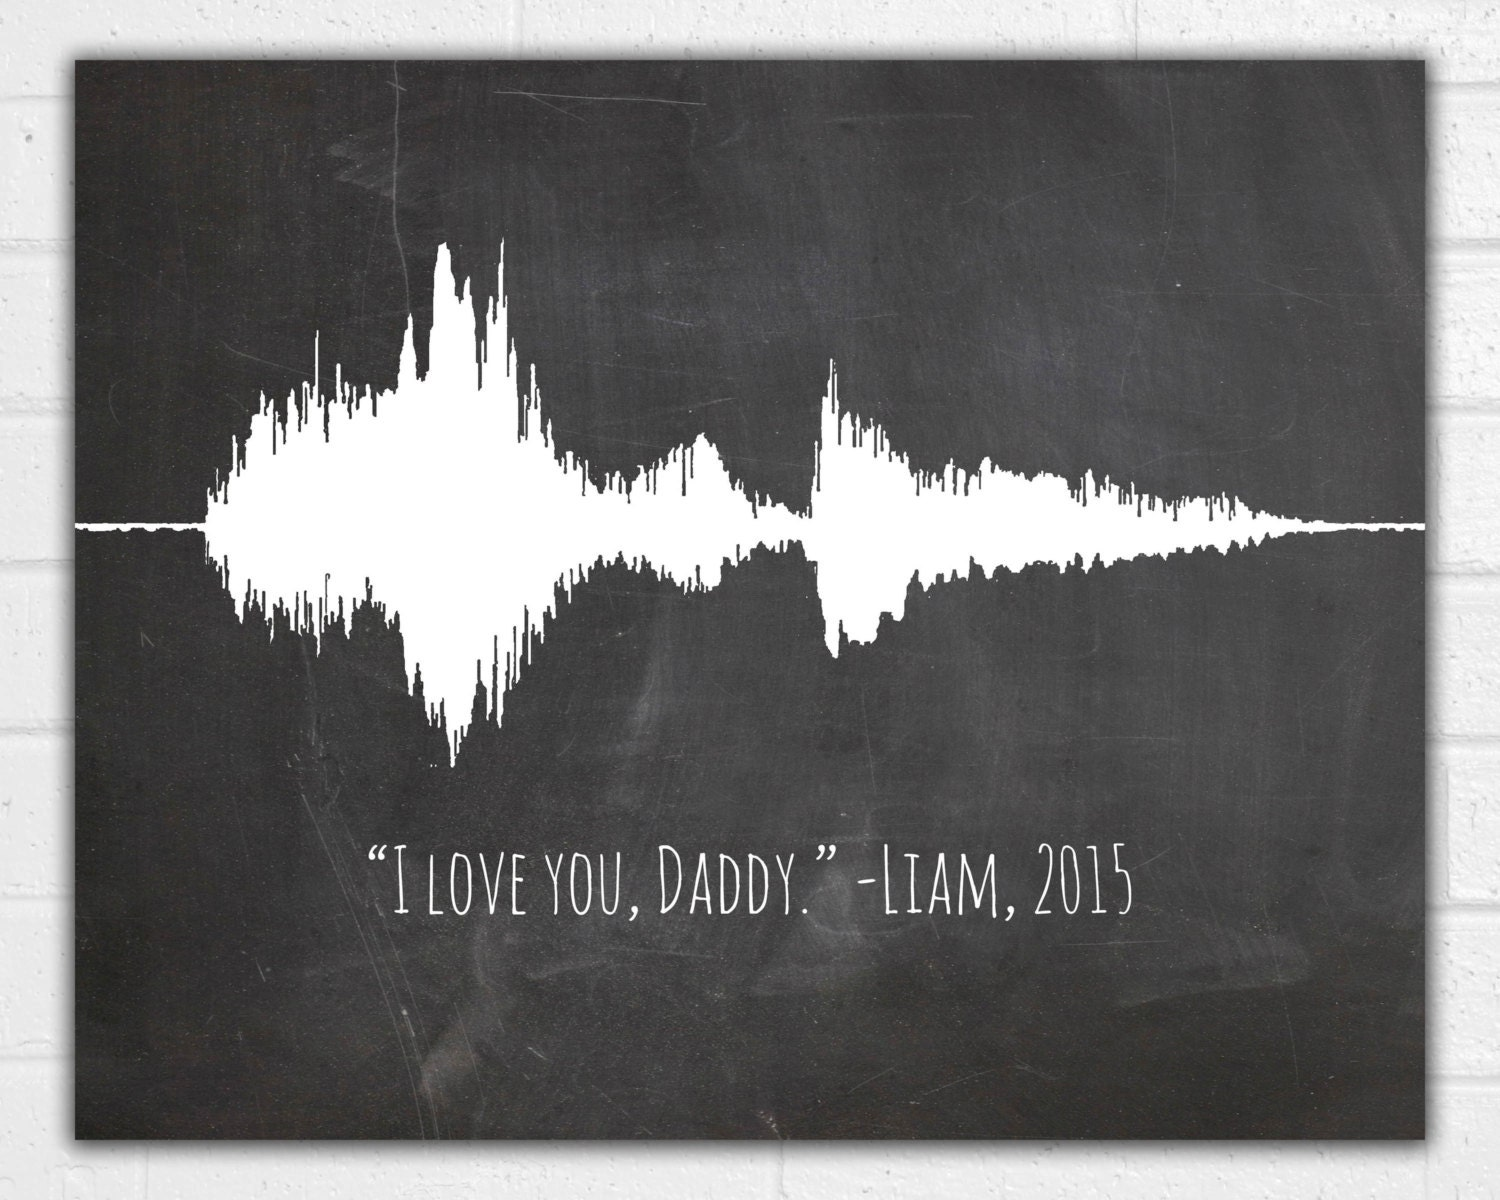 Color printing uw - Custom Sound Wave Art Print Voice Wave Choose Your Colors Up To 5 Voices Christmas Birthday Mother S Day Father S Day Gift